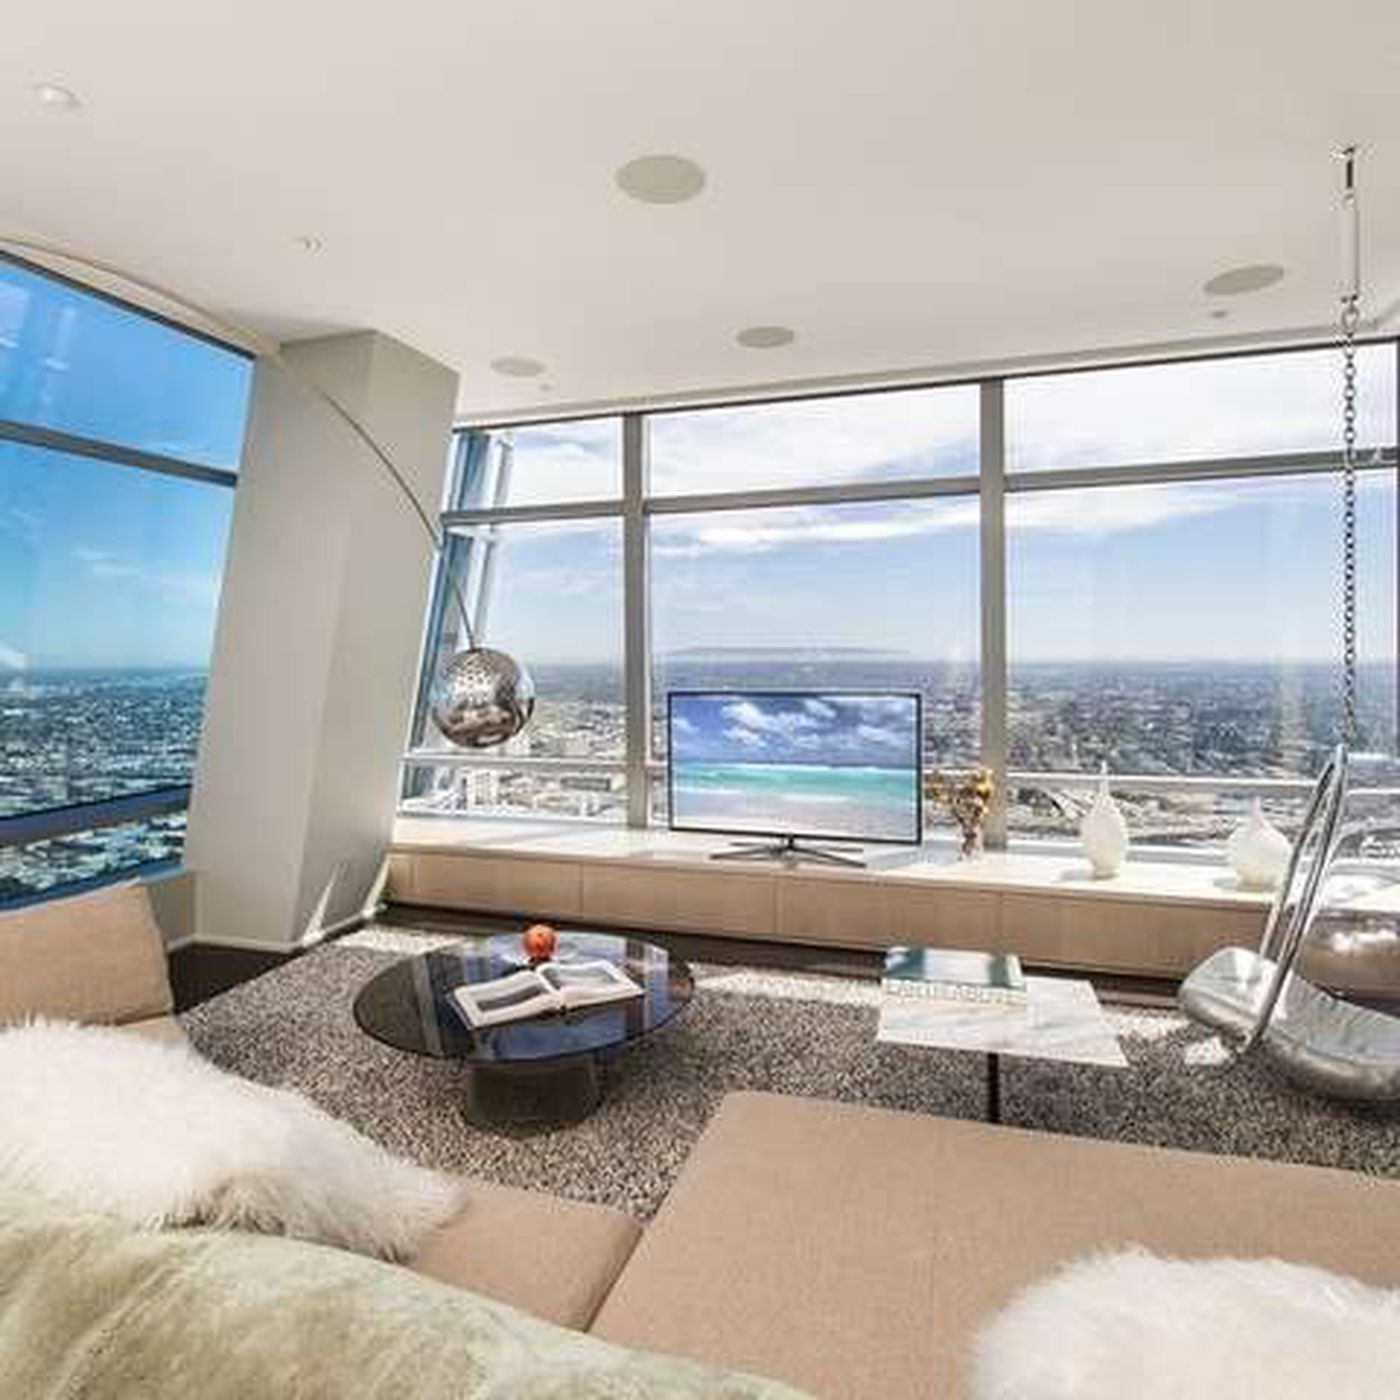 15m Penthouse In South Parks Ritz Carlton Residences Has Great